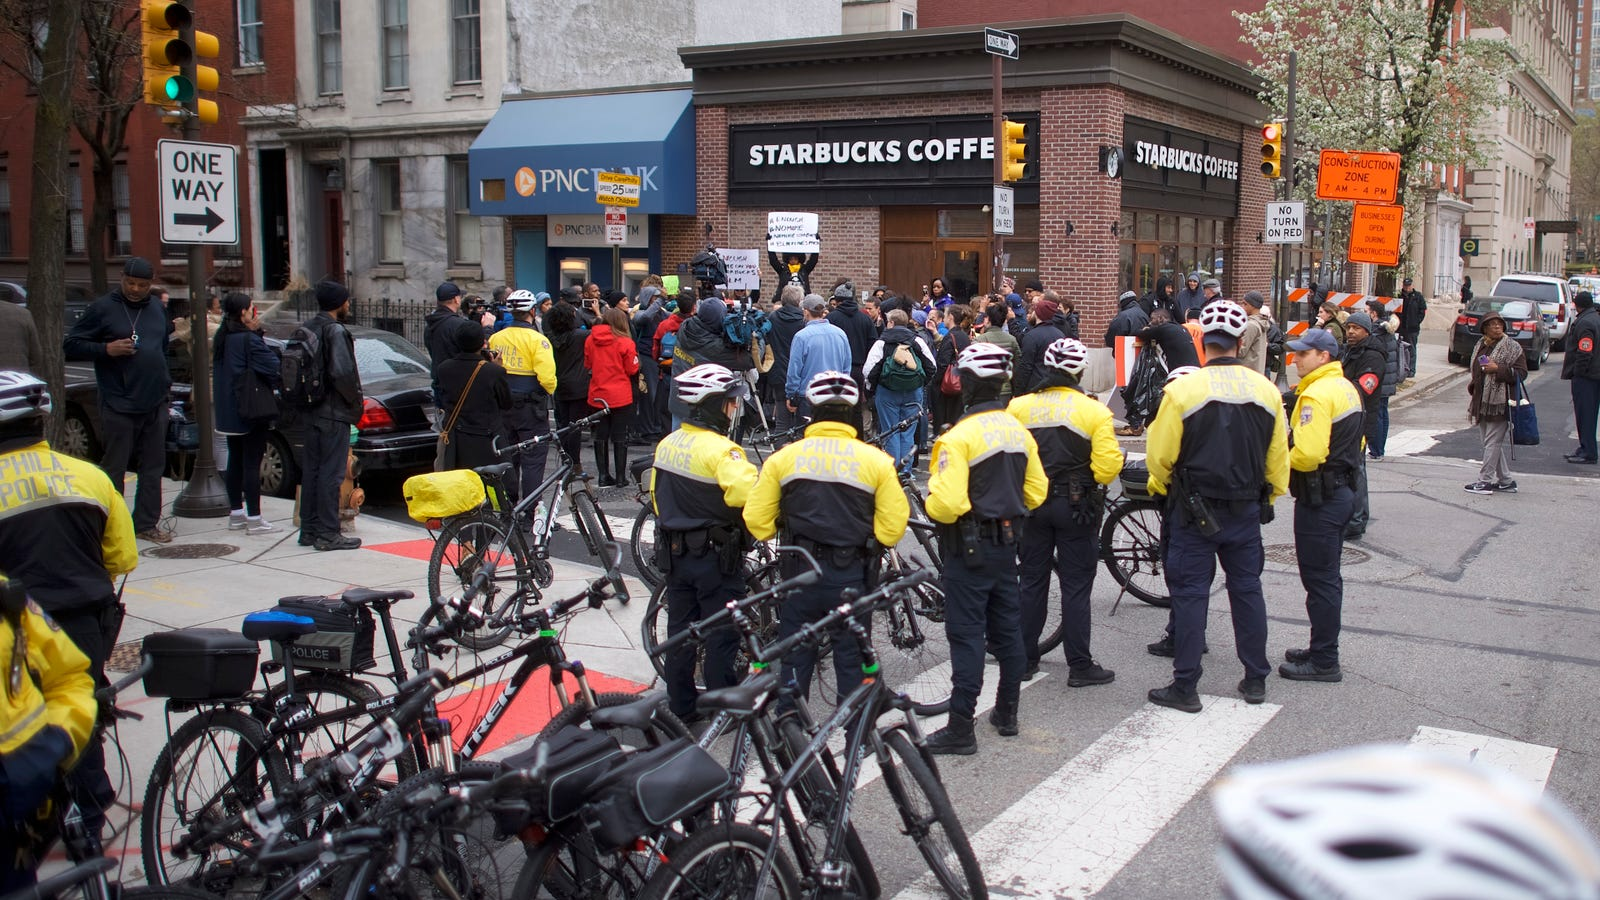 From Starbucks to Hashtags: We Need to Talk About Why White Americans Call the Police on Black People